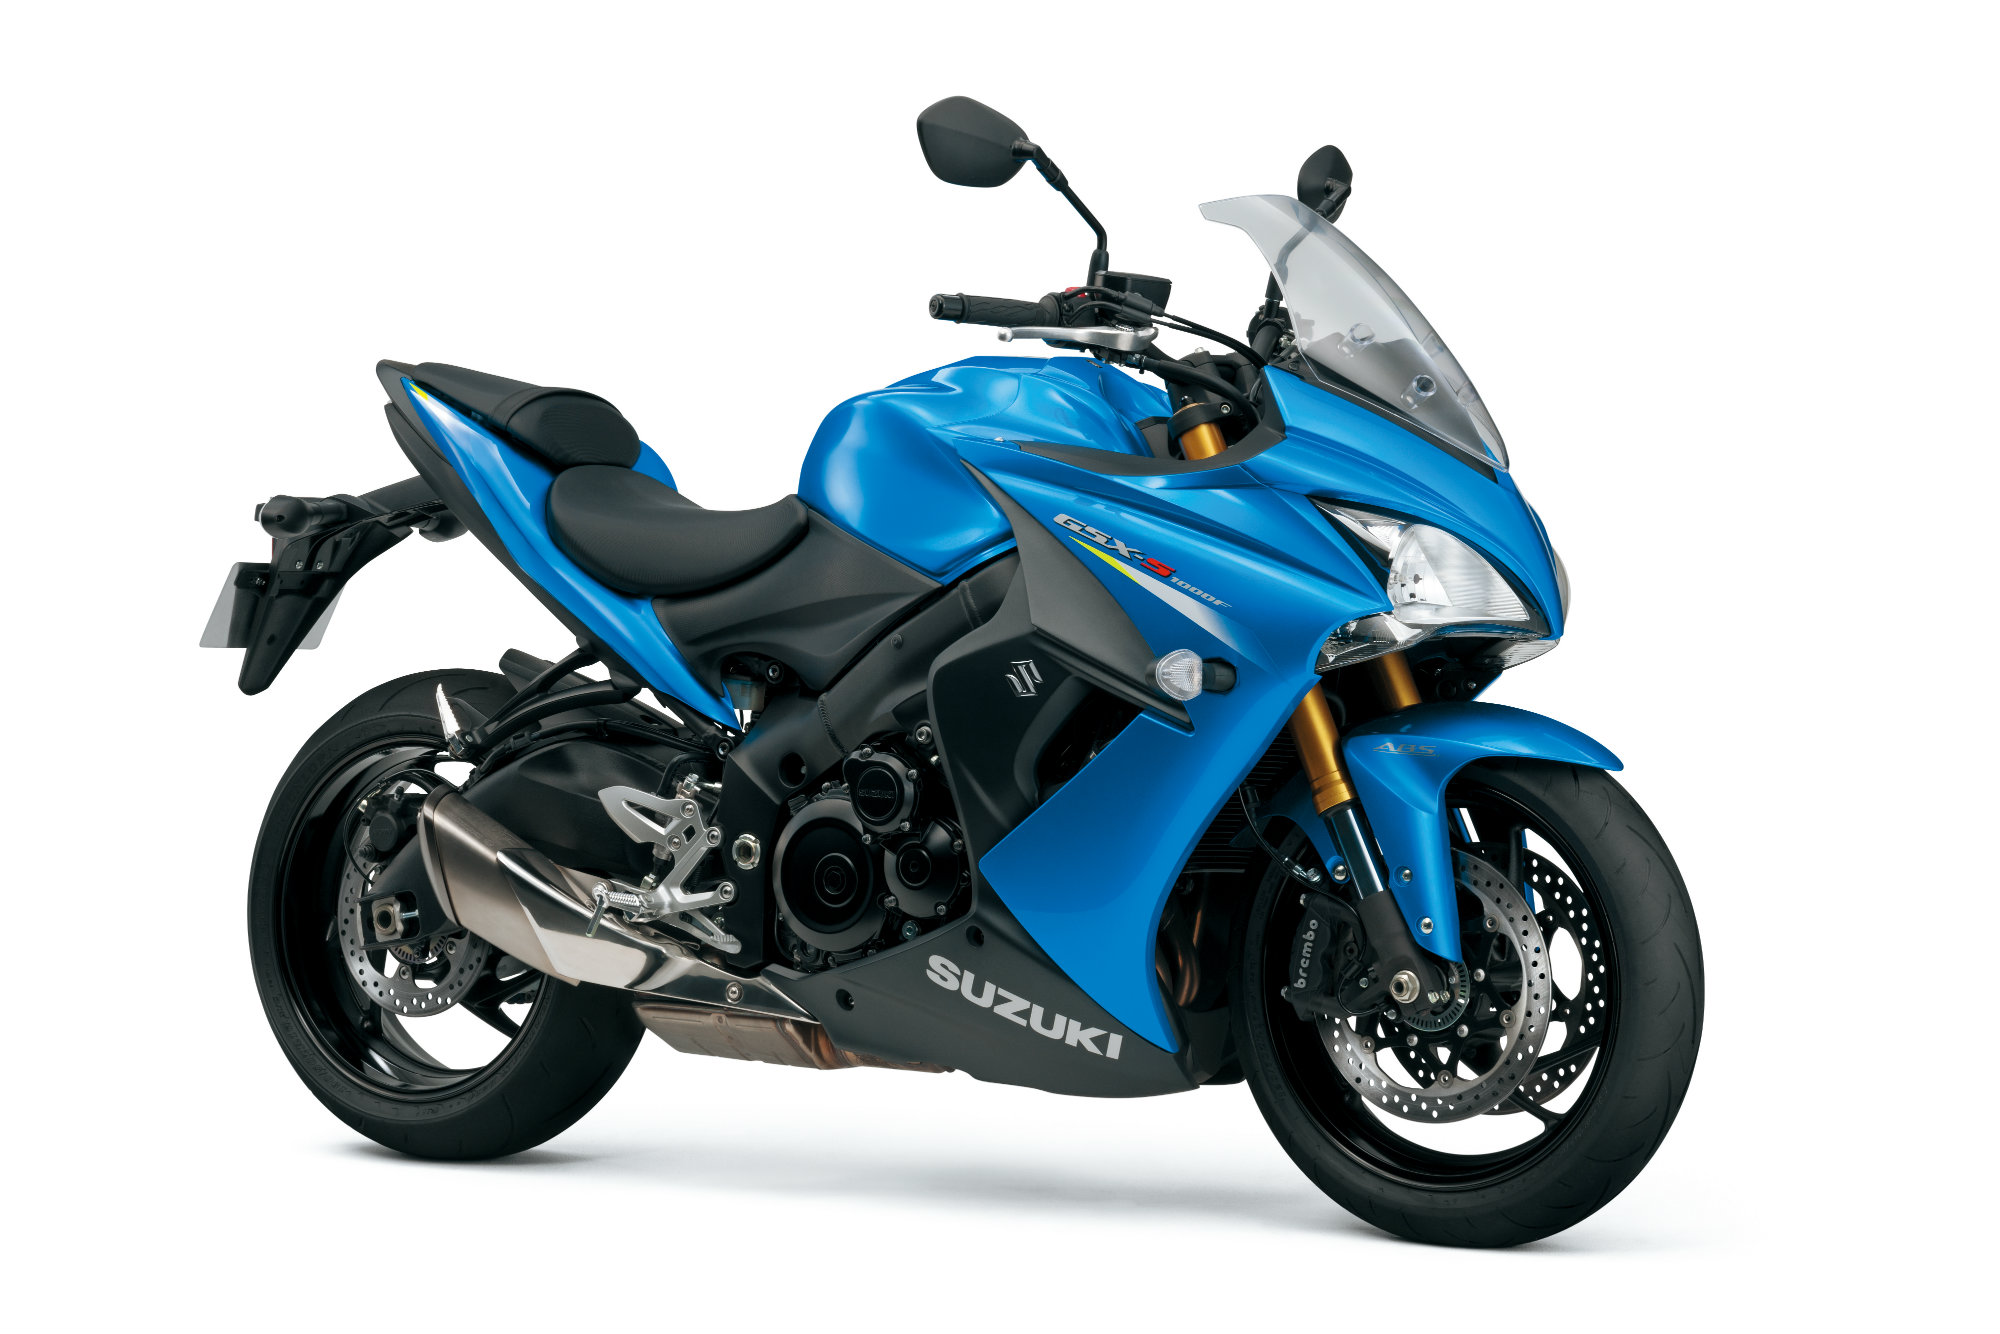 Intermot 2014: Suzuki GSX-S1000 and GSX-S1000F unveiled